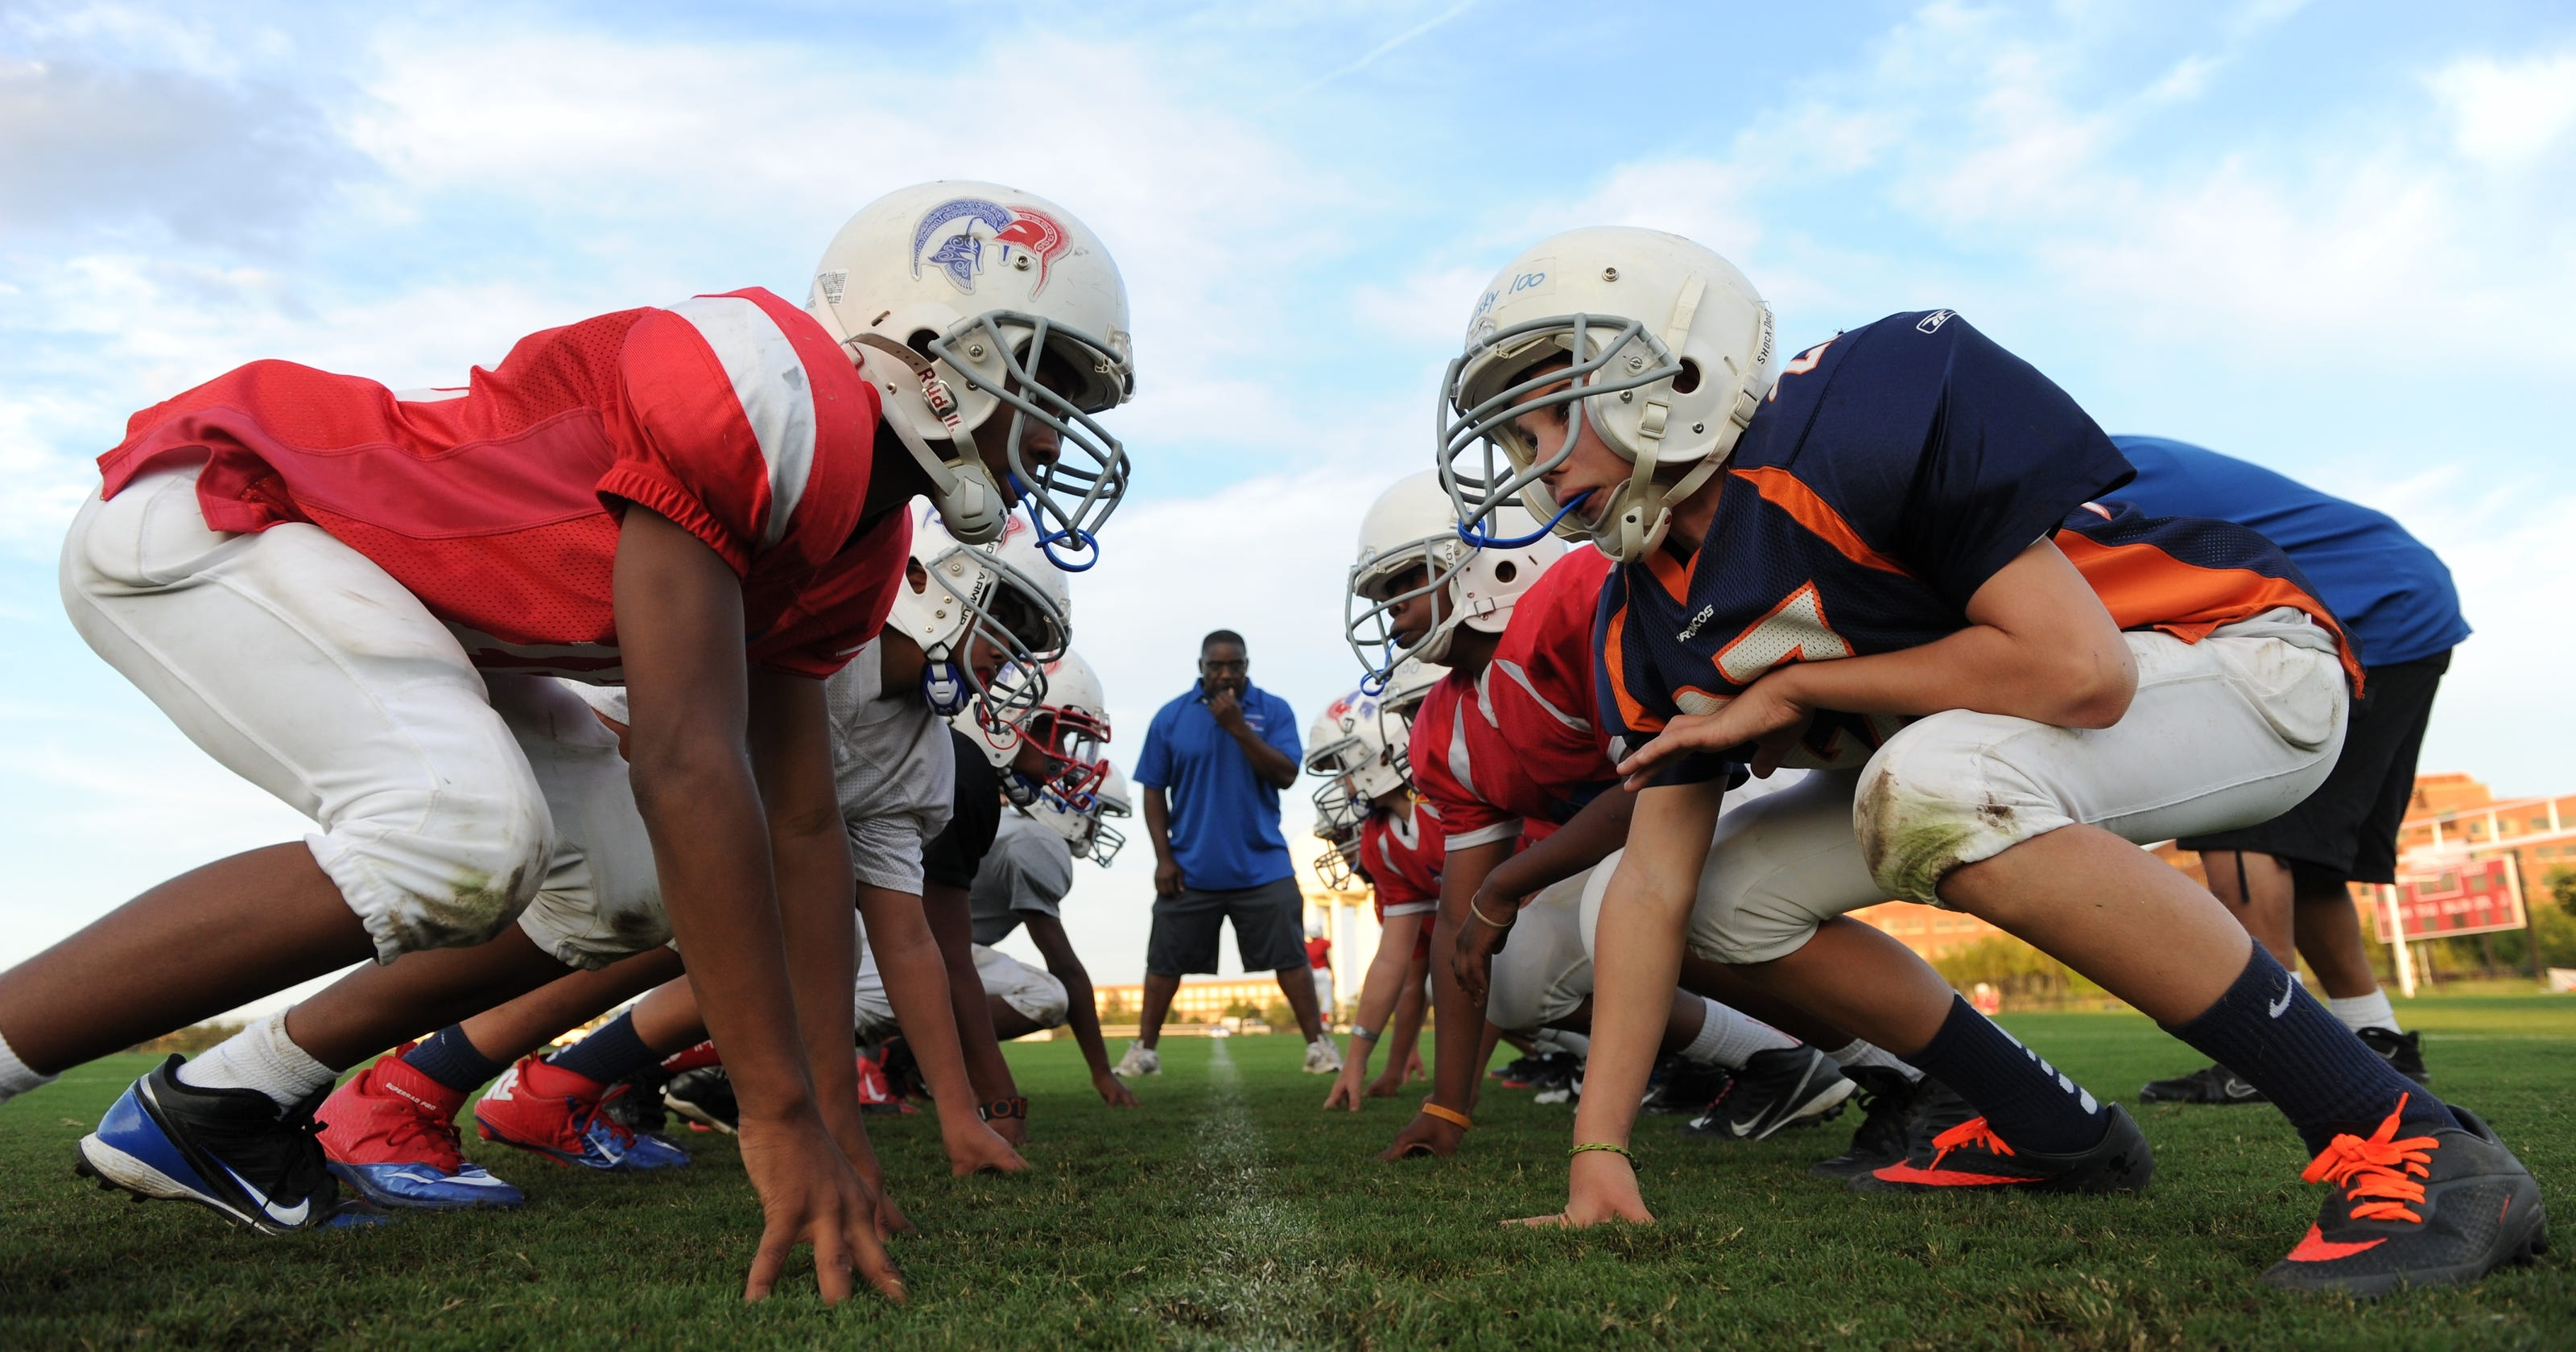 Concussion Doctor Says Kids Shouldnt >> Why Parents Shouldn T Clear Kids From Concussions